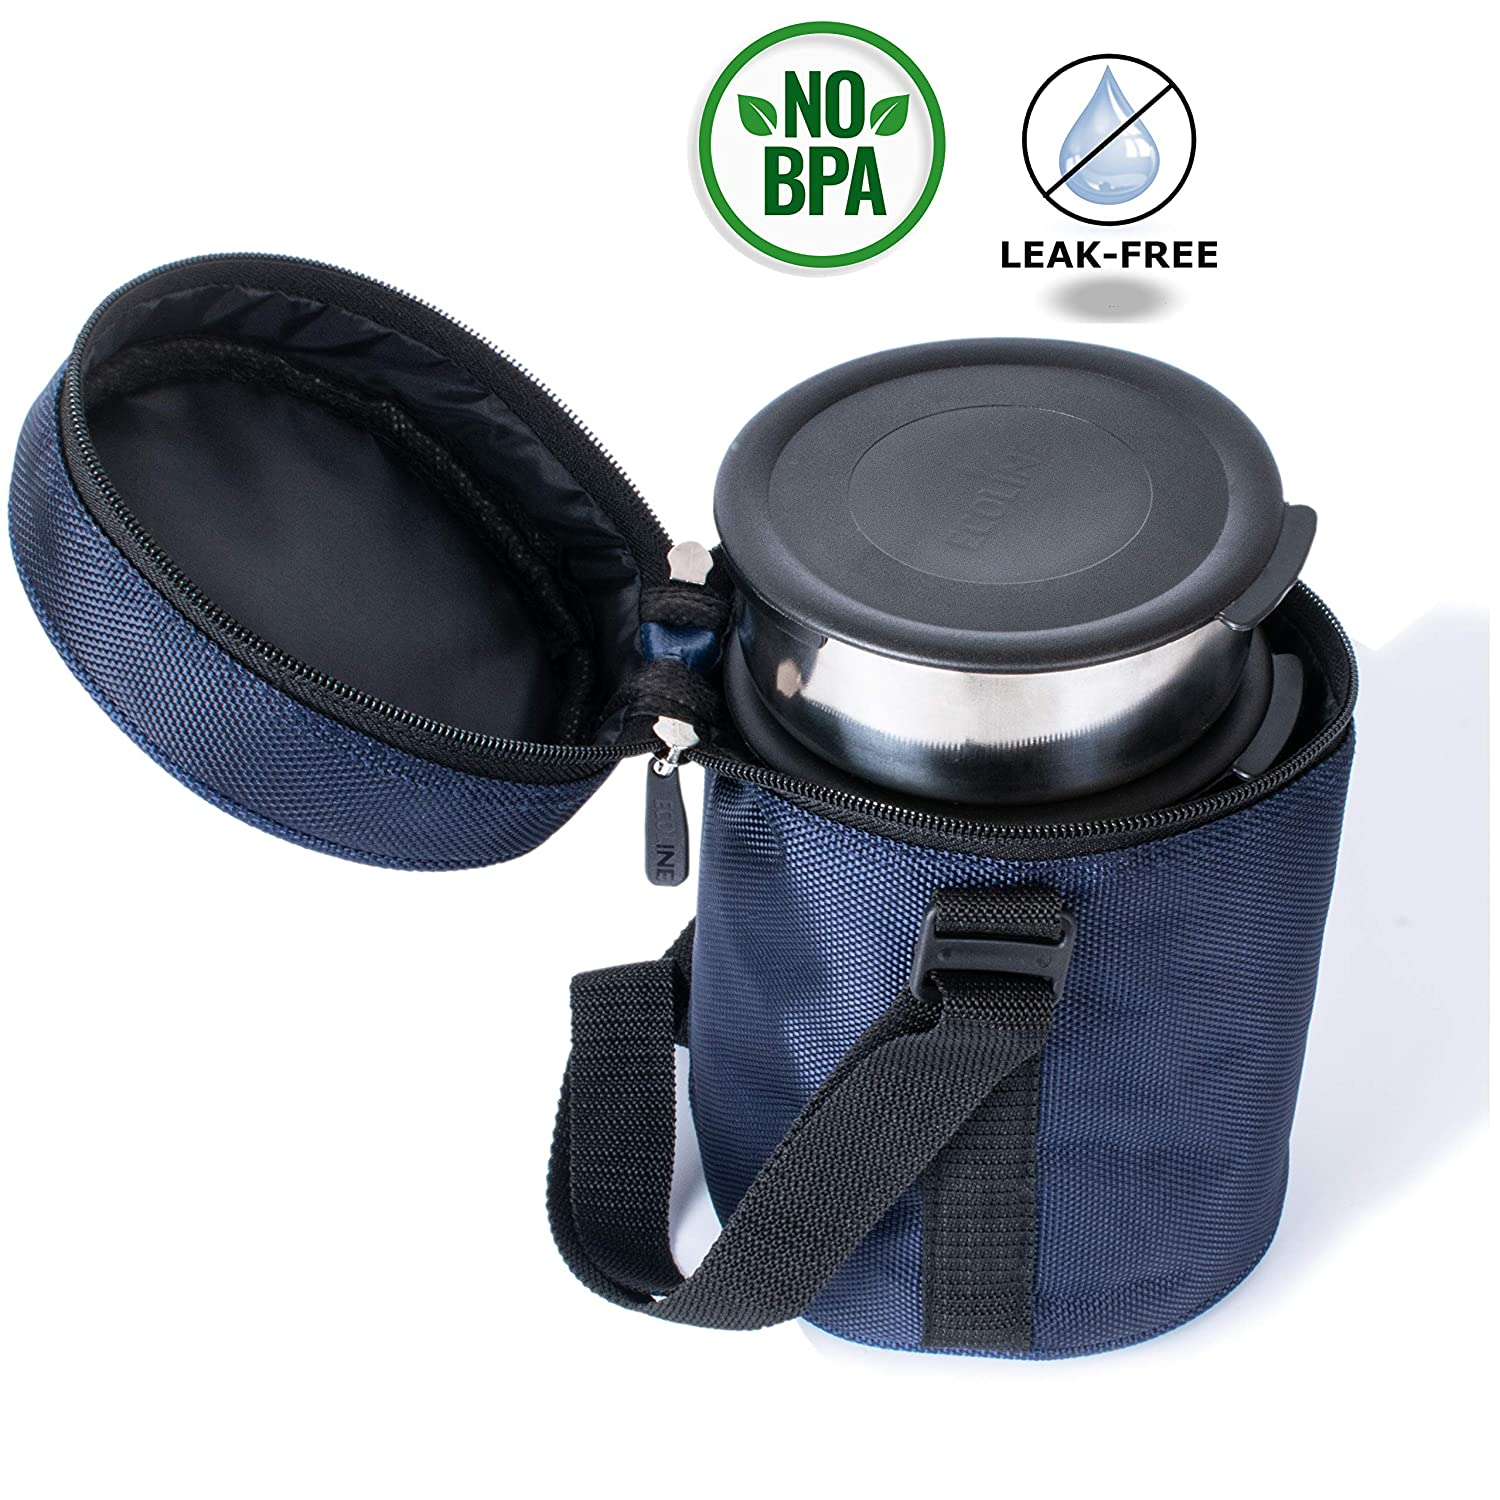 Ecoline Lunch Box Stainless Steel